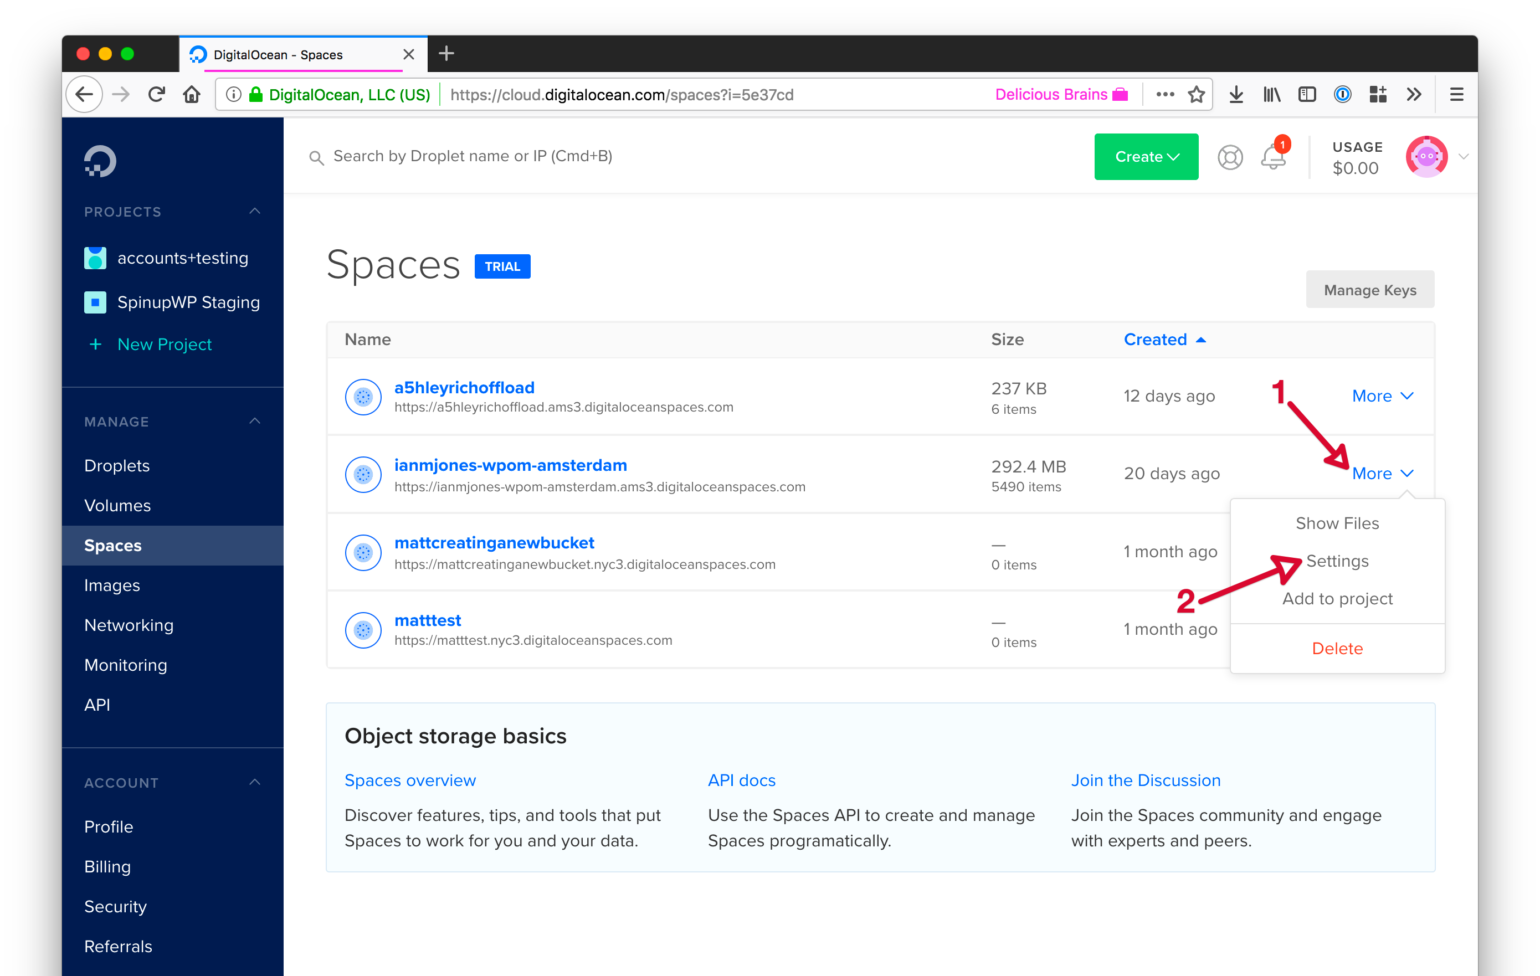 How to Set Up a Custom Domain for DigitalOcean Spaces with